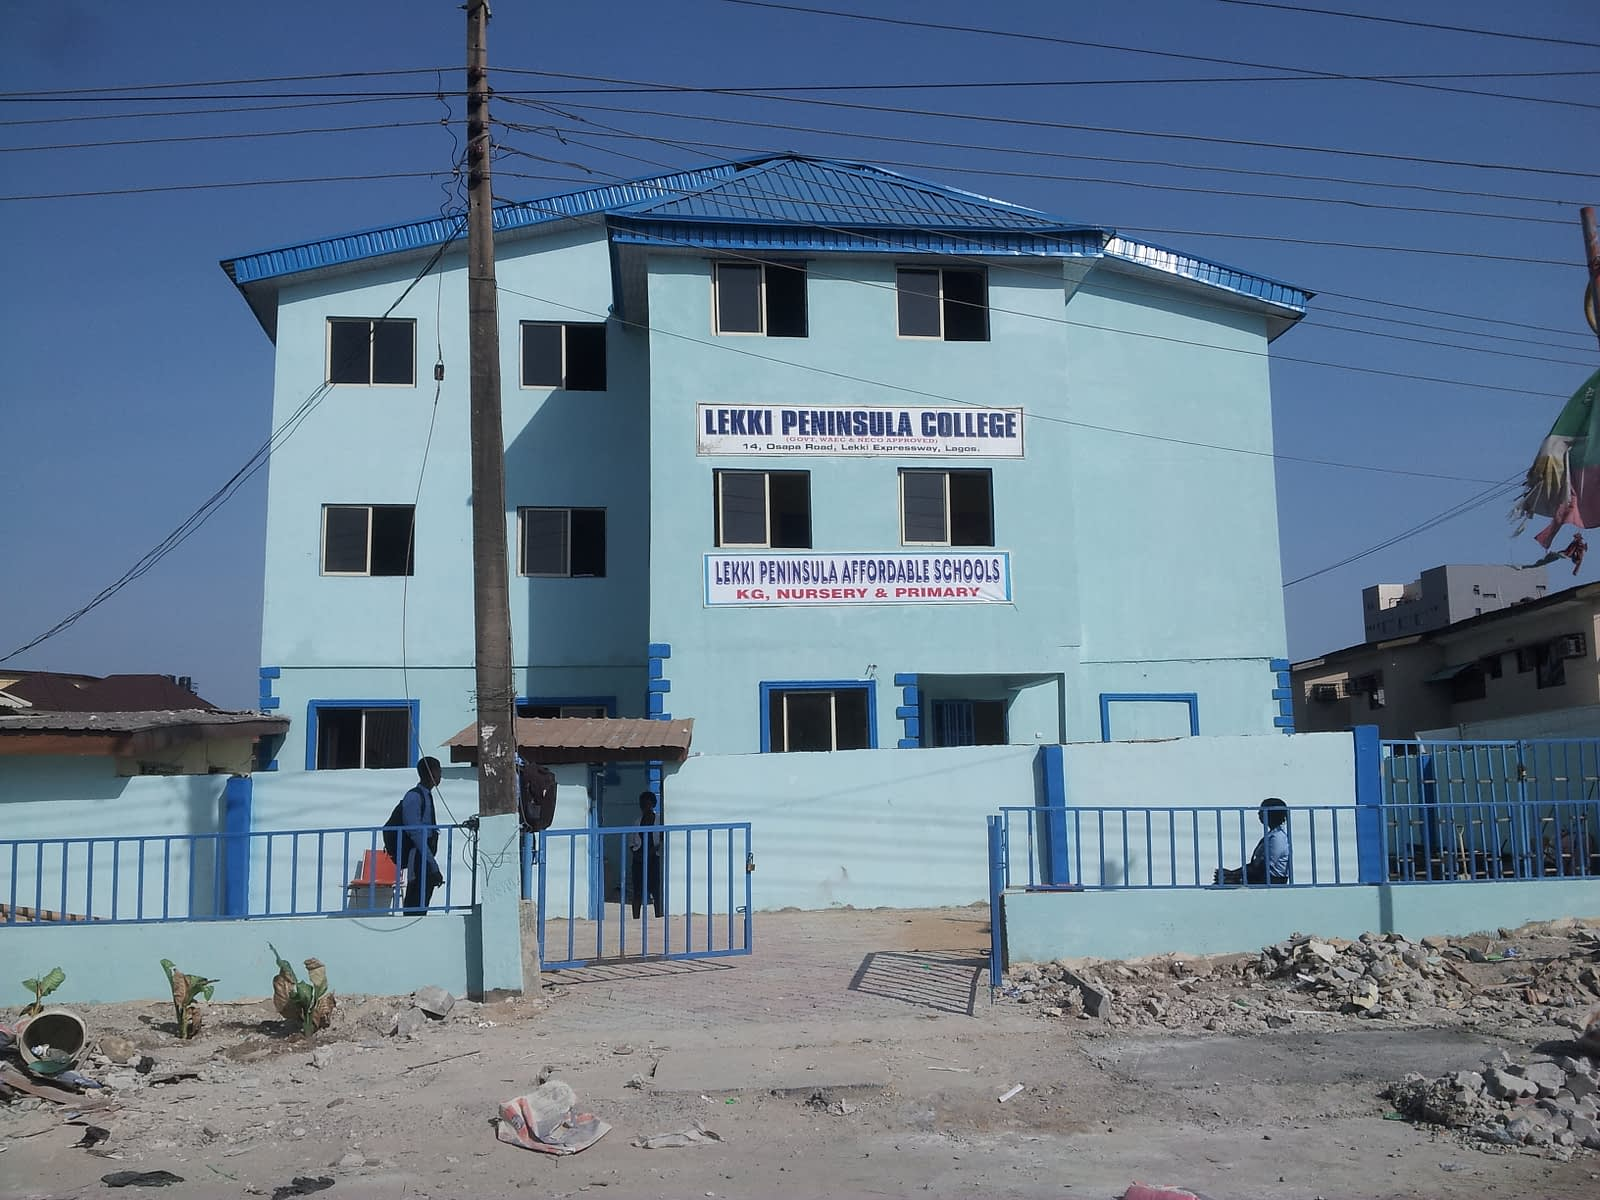 The bright Lekki Peninsula School, where lives are changed everyday.